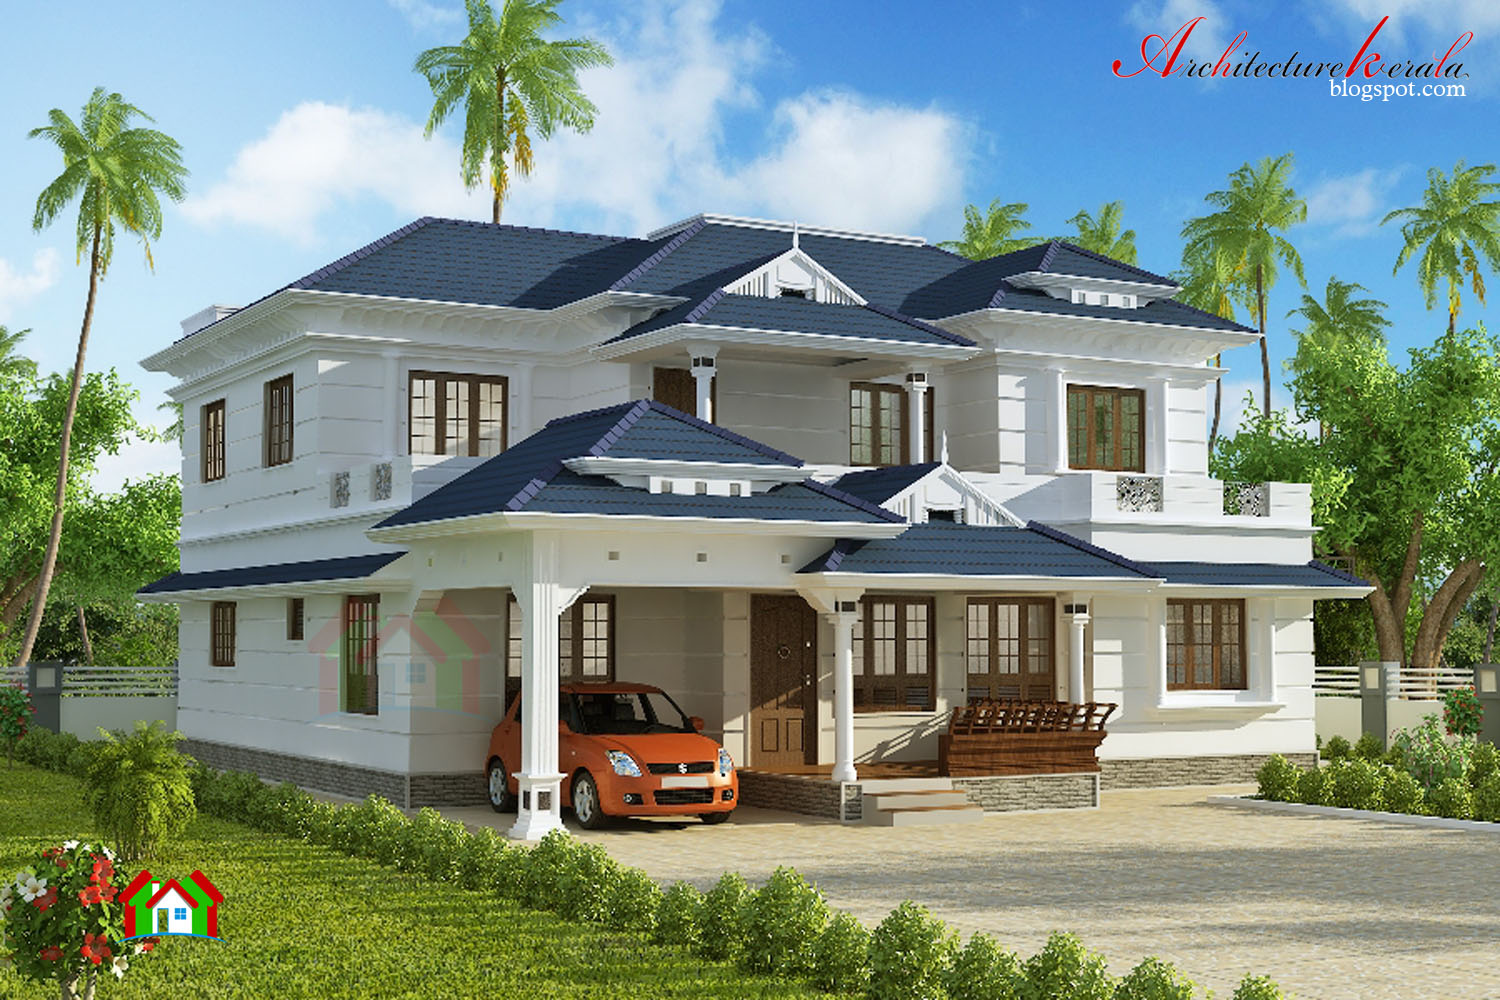 Architecture kerala 3000 square feet house plan for Home designs 3000 sq ft